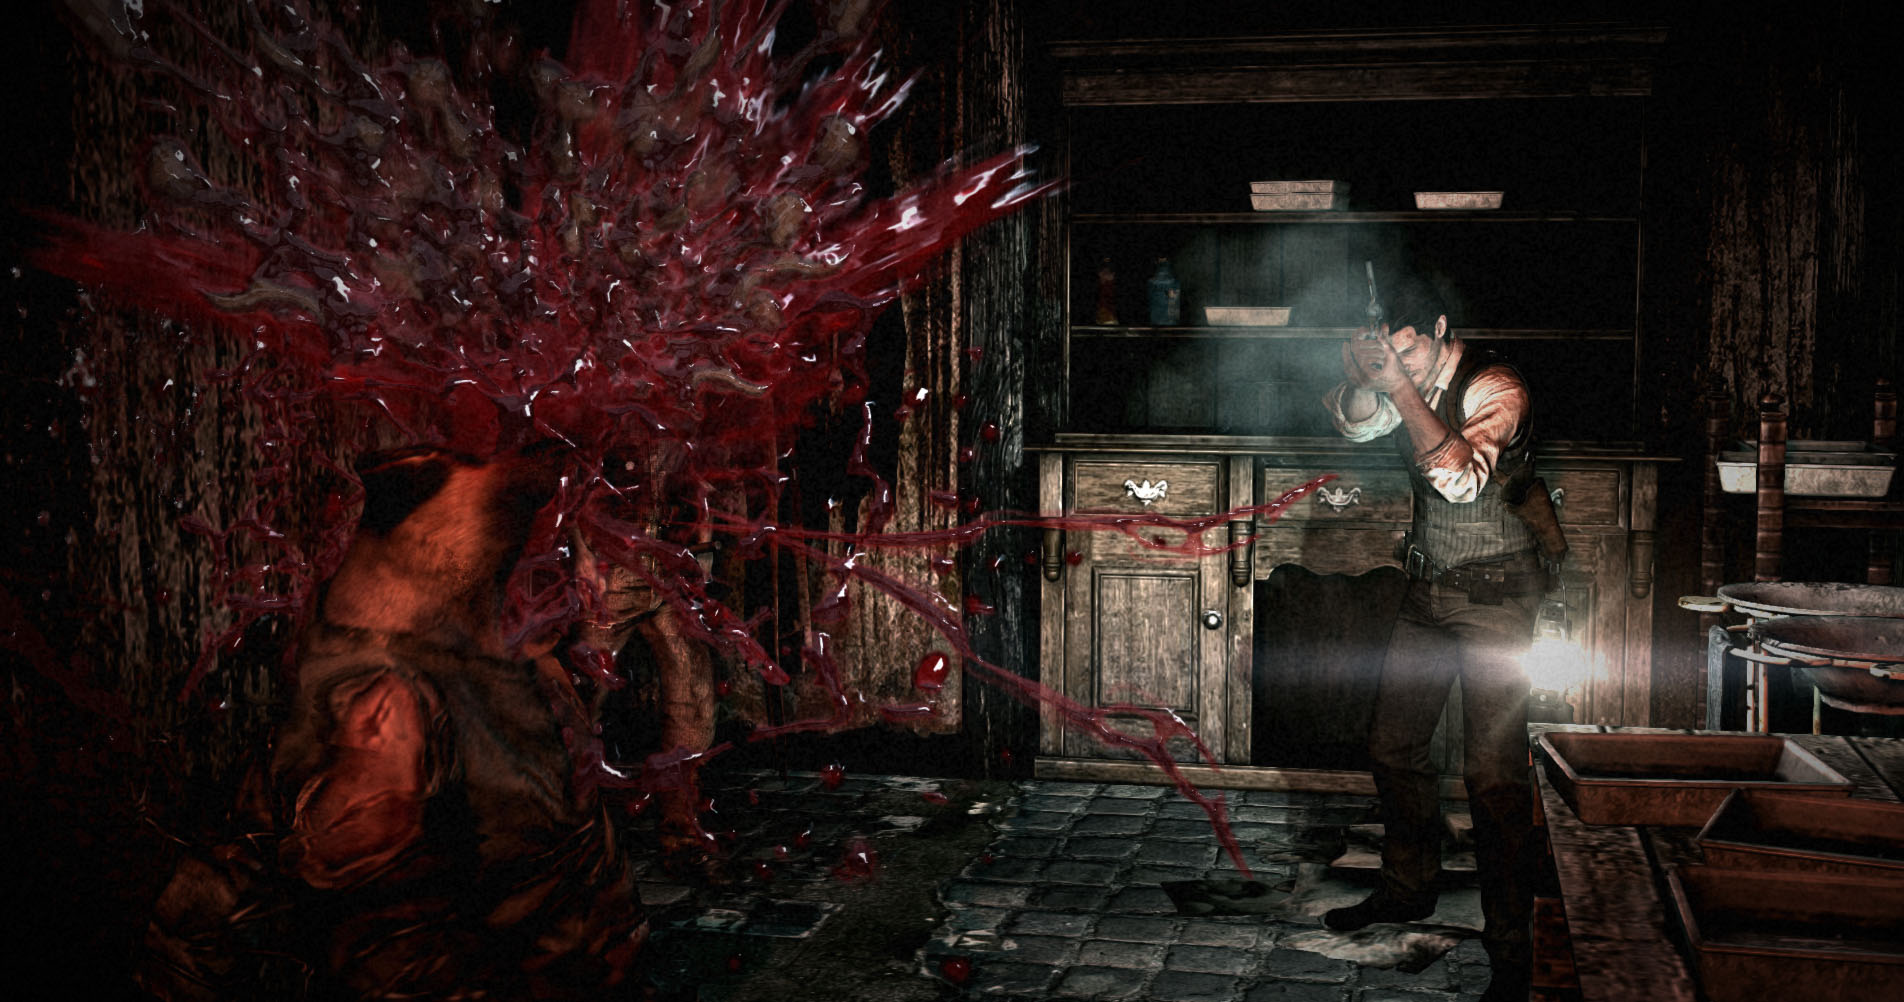 The Evil Within's first 15 minutes sets a spooky and suspenseful tone